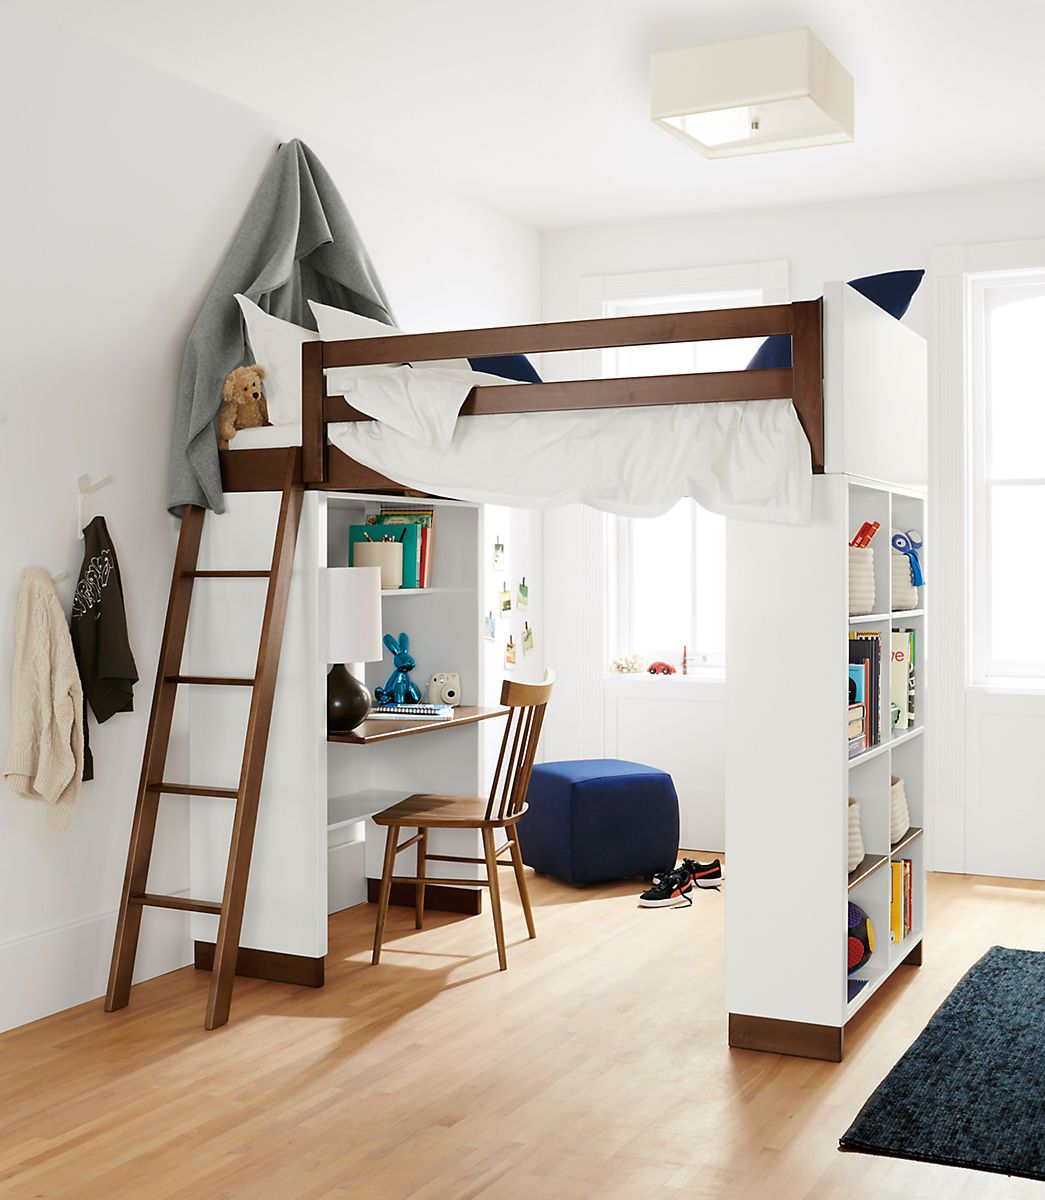 15 Amazing Interior Design Ideas For Modern Loft: Moda Loft Beds With Desk And Bookcase Options